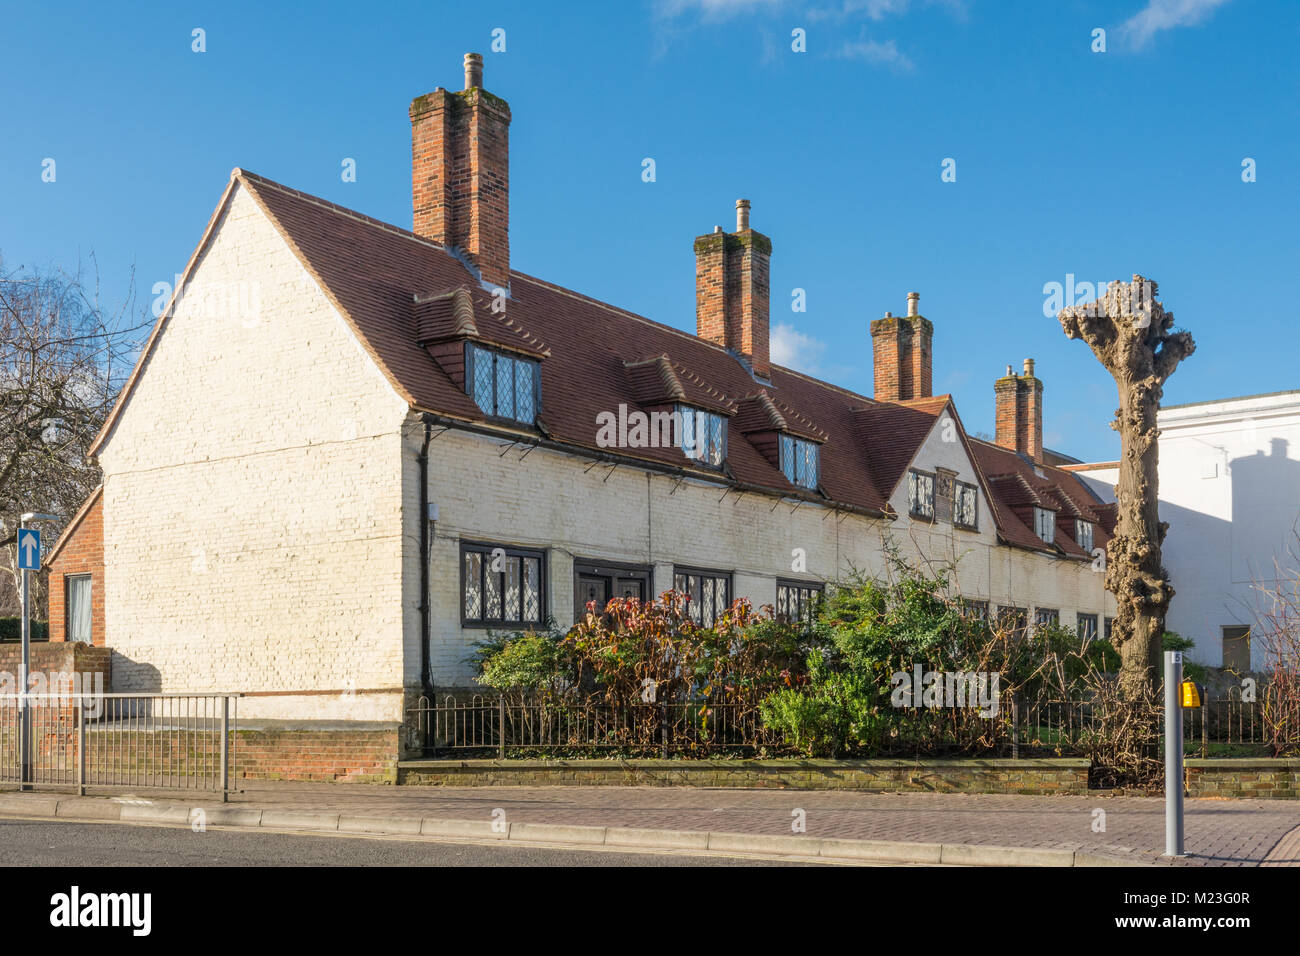 deanes-almshouses-in-basingstoke-hampshire-uk-M23G0R.jpg